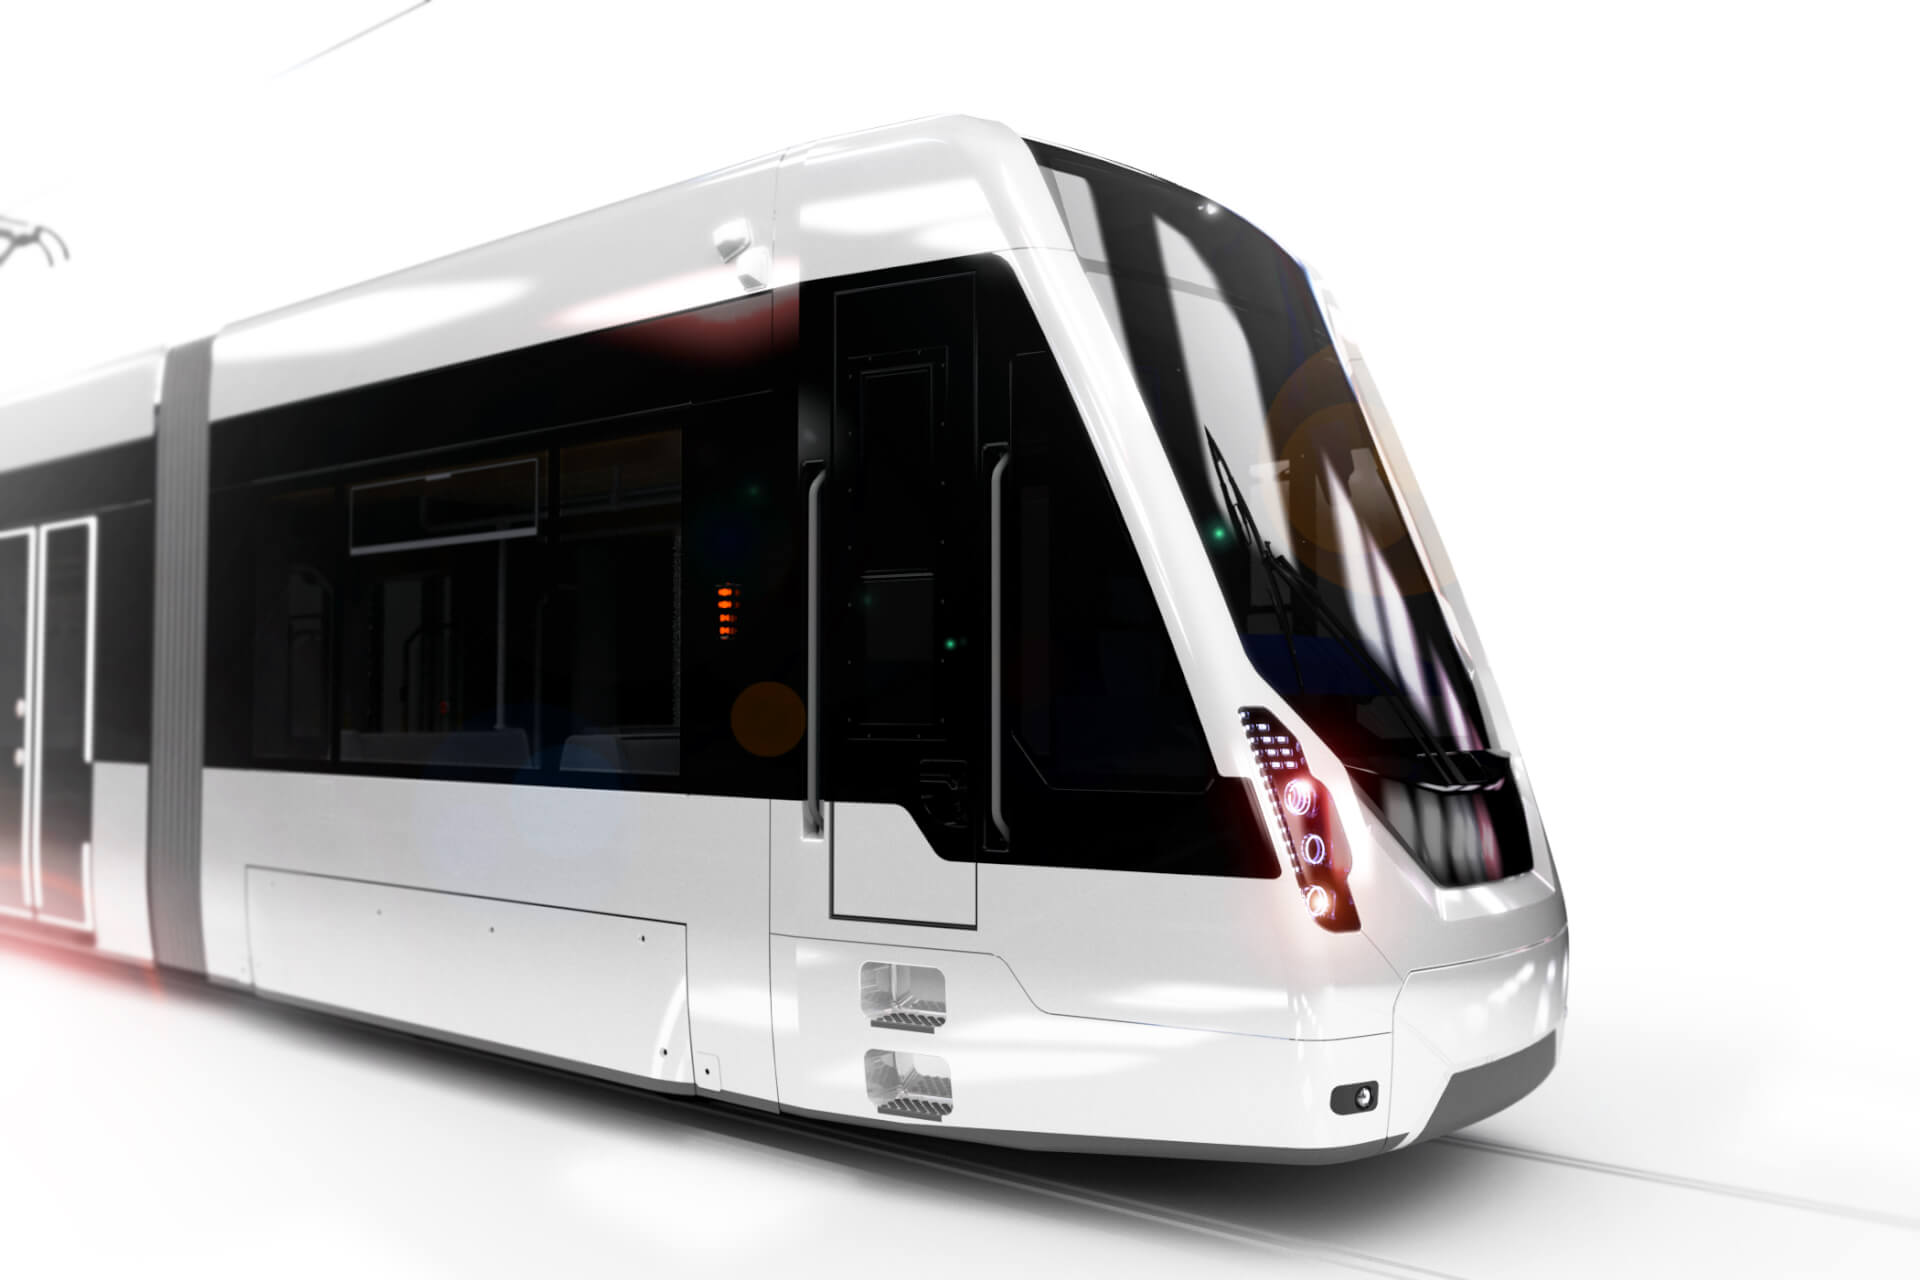 Detail of a SRT Tram, rendering, white